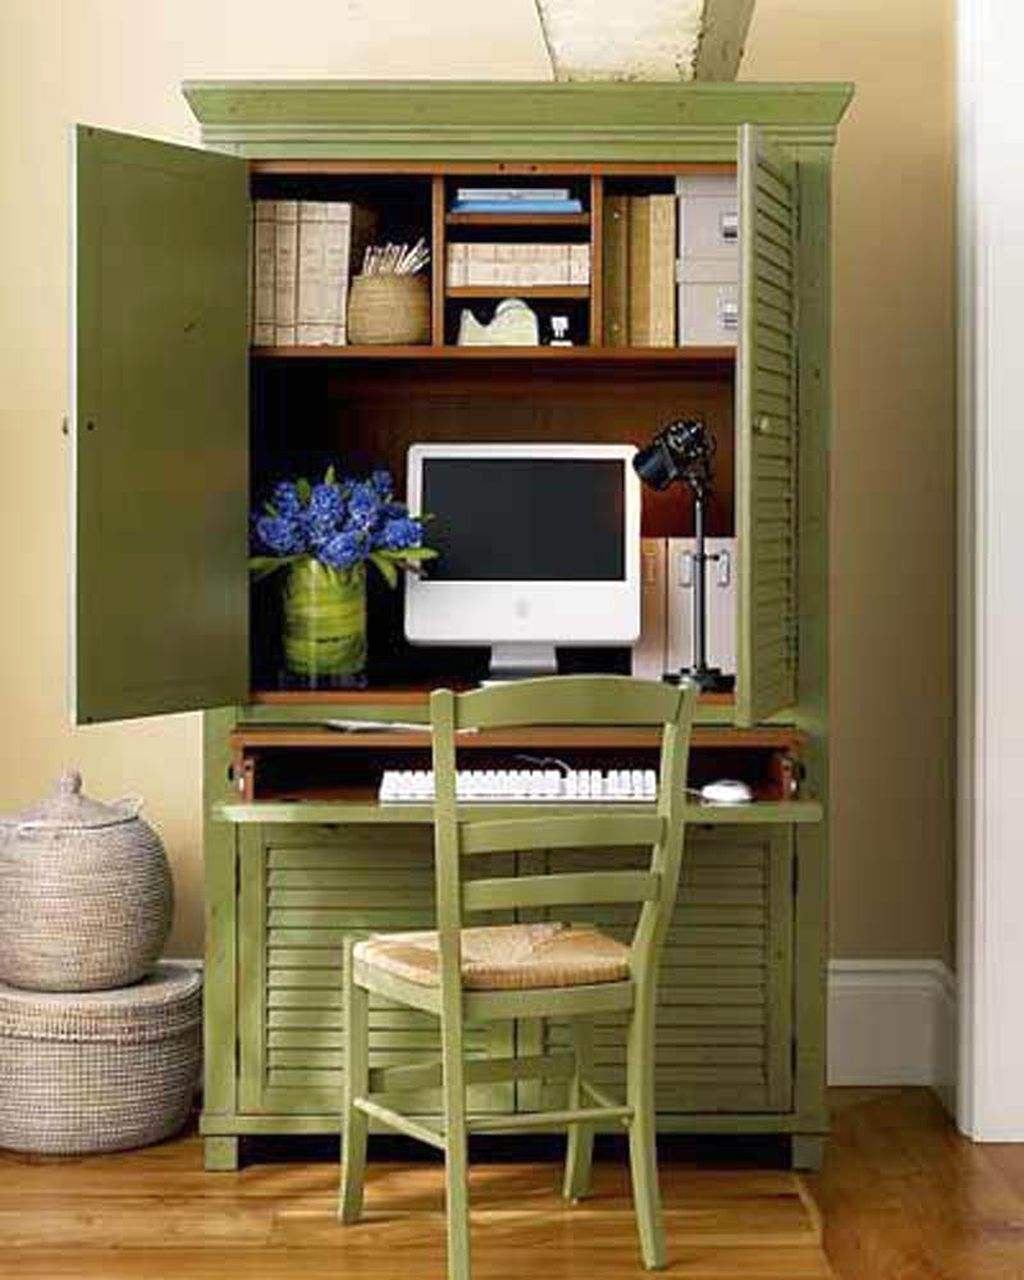 Green cupboard home office design ideas for small spaces for Small office design ideas